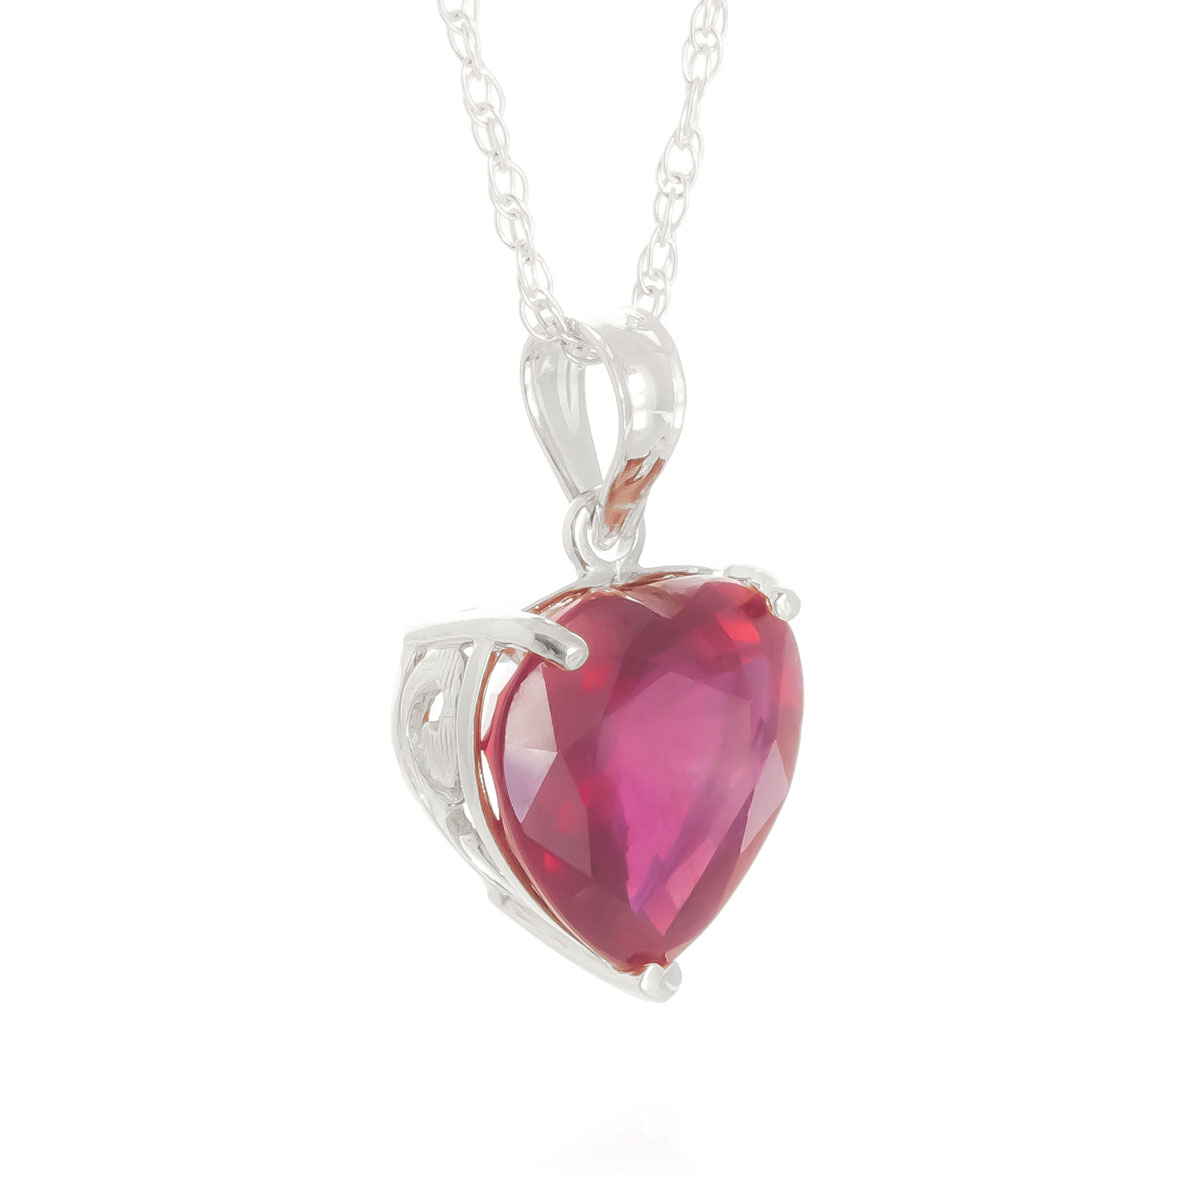 Ruby Large Heart Pendant Necklace 4.3 ct in 9ct White Gold